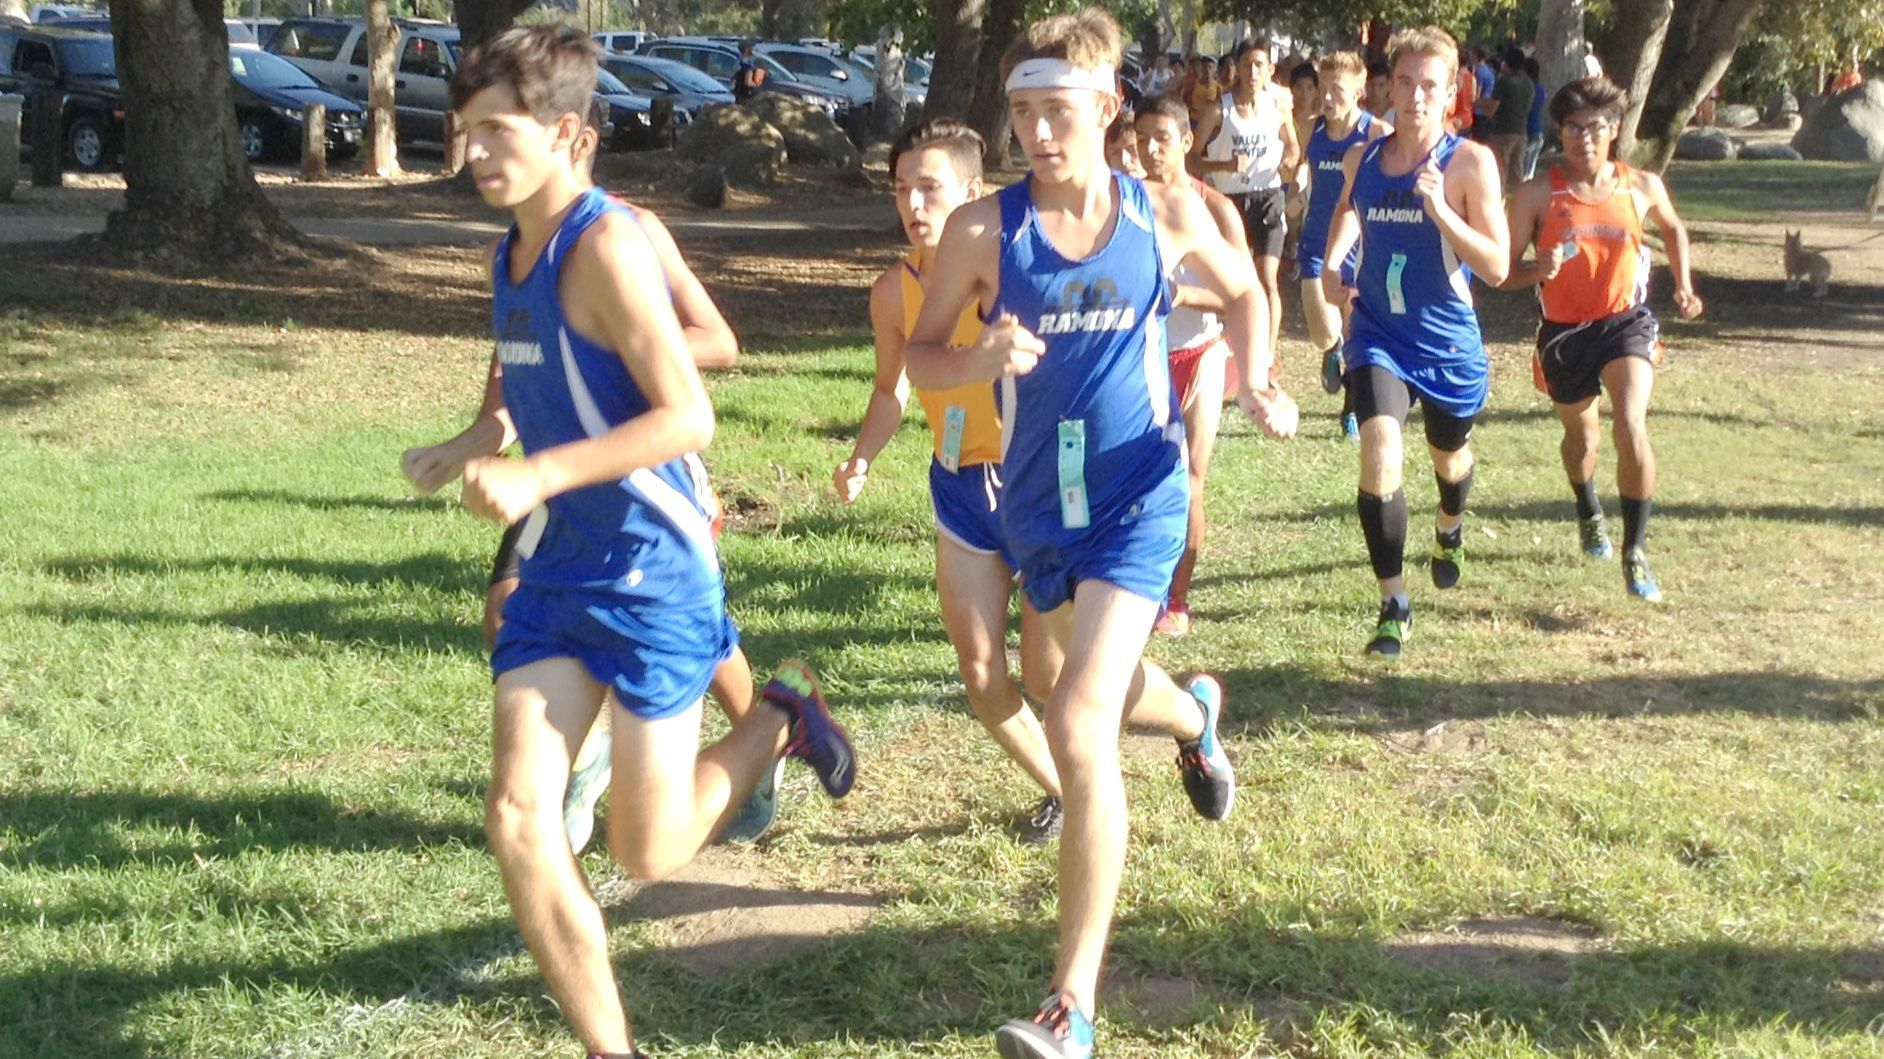 Bulldogs Gavin Roche, Cameron Klein, Shawn McClure and Mitchell Sutter are in front after the first half-mile of the league match.